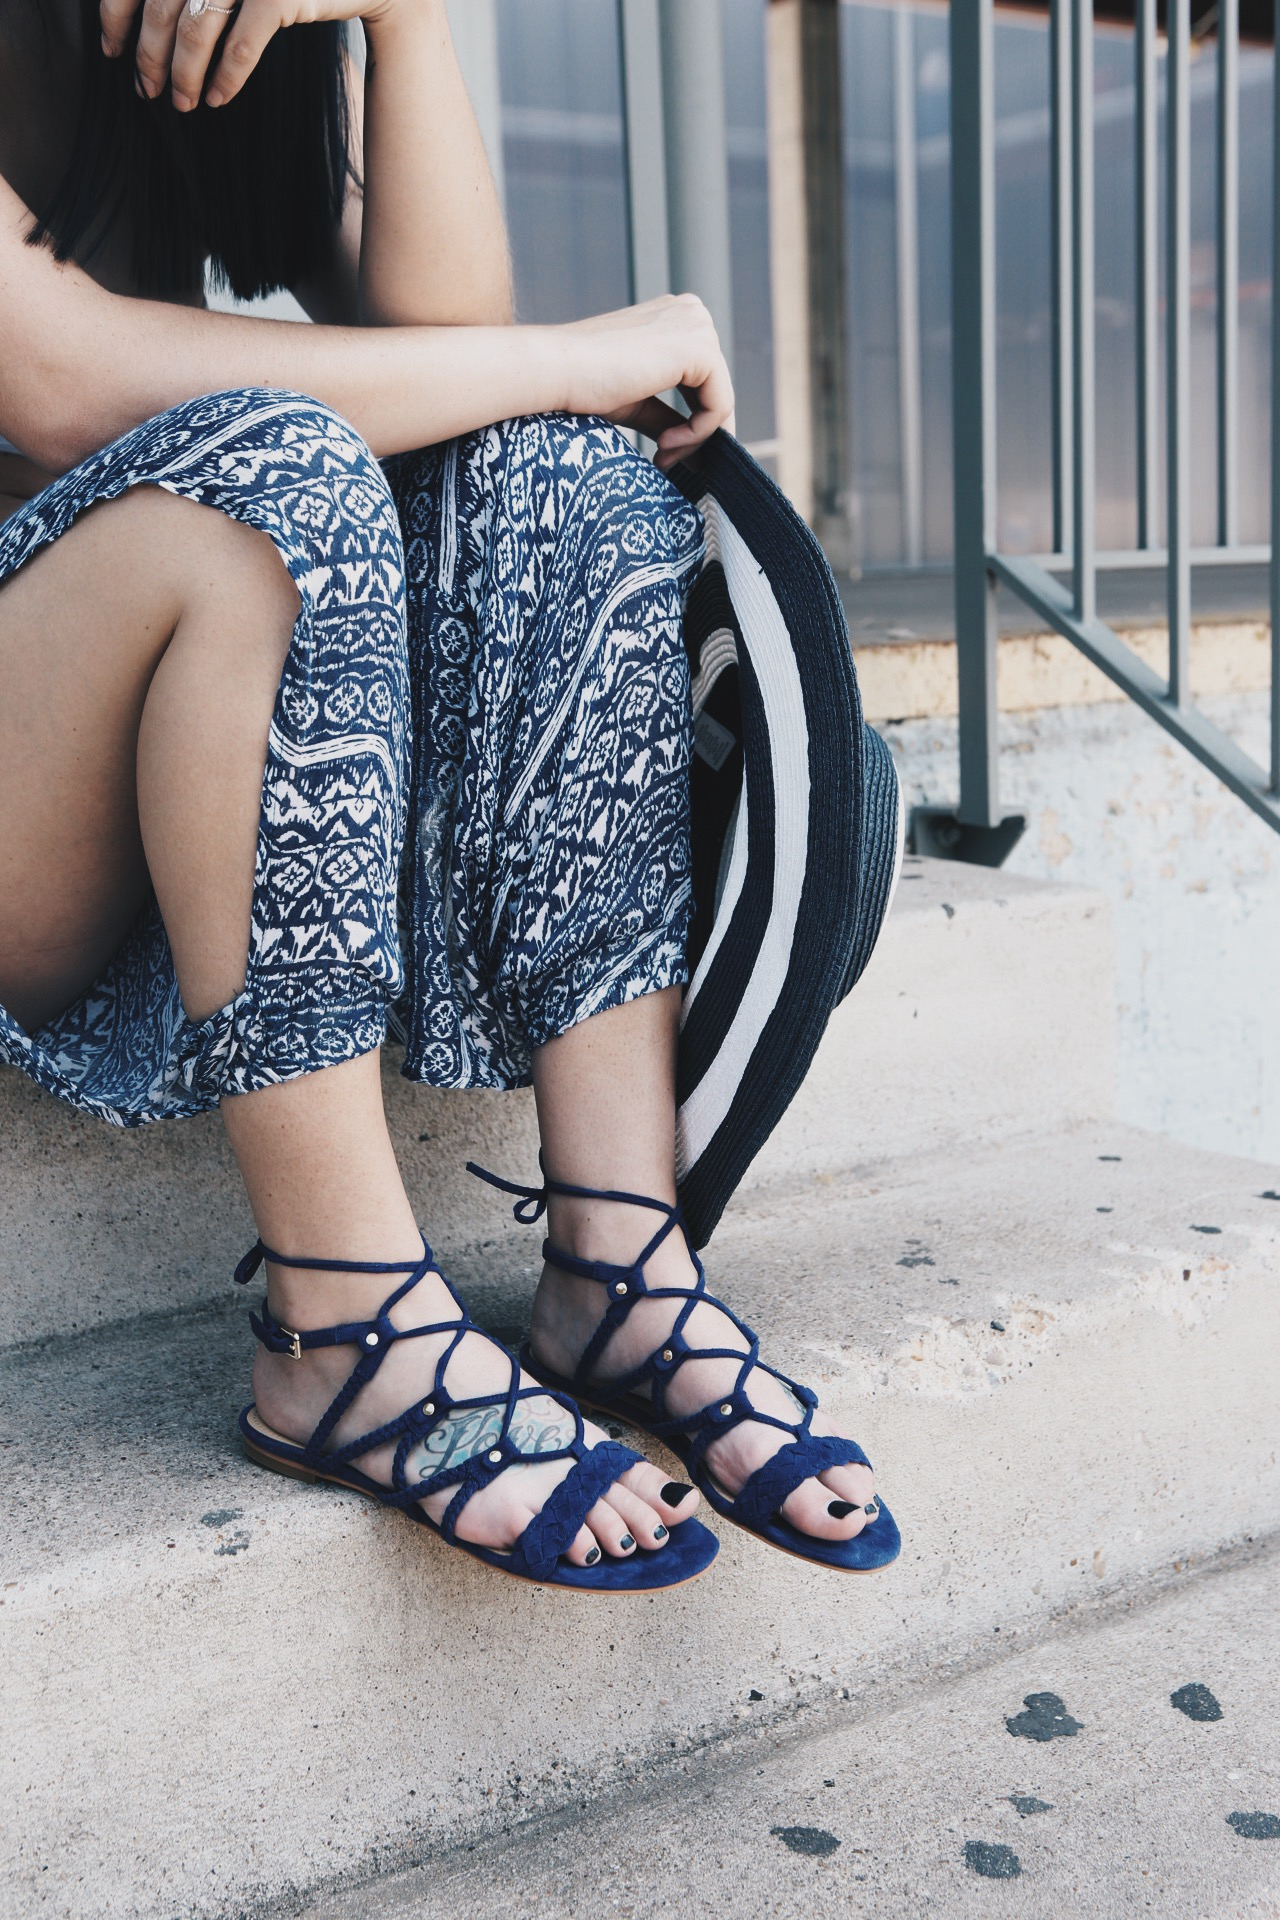 Must Have Summer Shoes | shoes for summer | shoe styles for summer | summer fashion tips | summer outfit ideas | summer style tips | what to wear for summer | warm weather fashion | fashion for summer | style tips for summer | outfit ideas for summer || Dressed to Kill